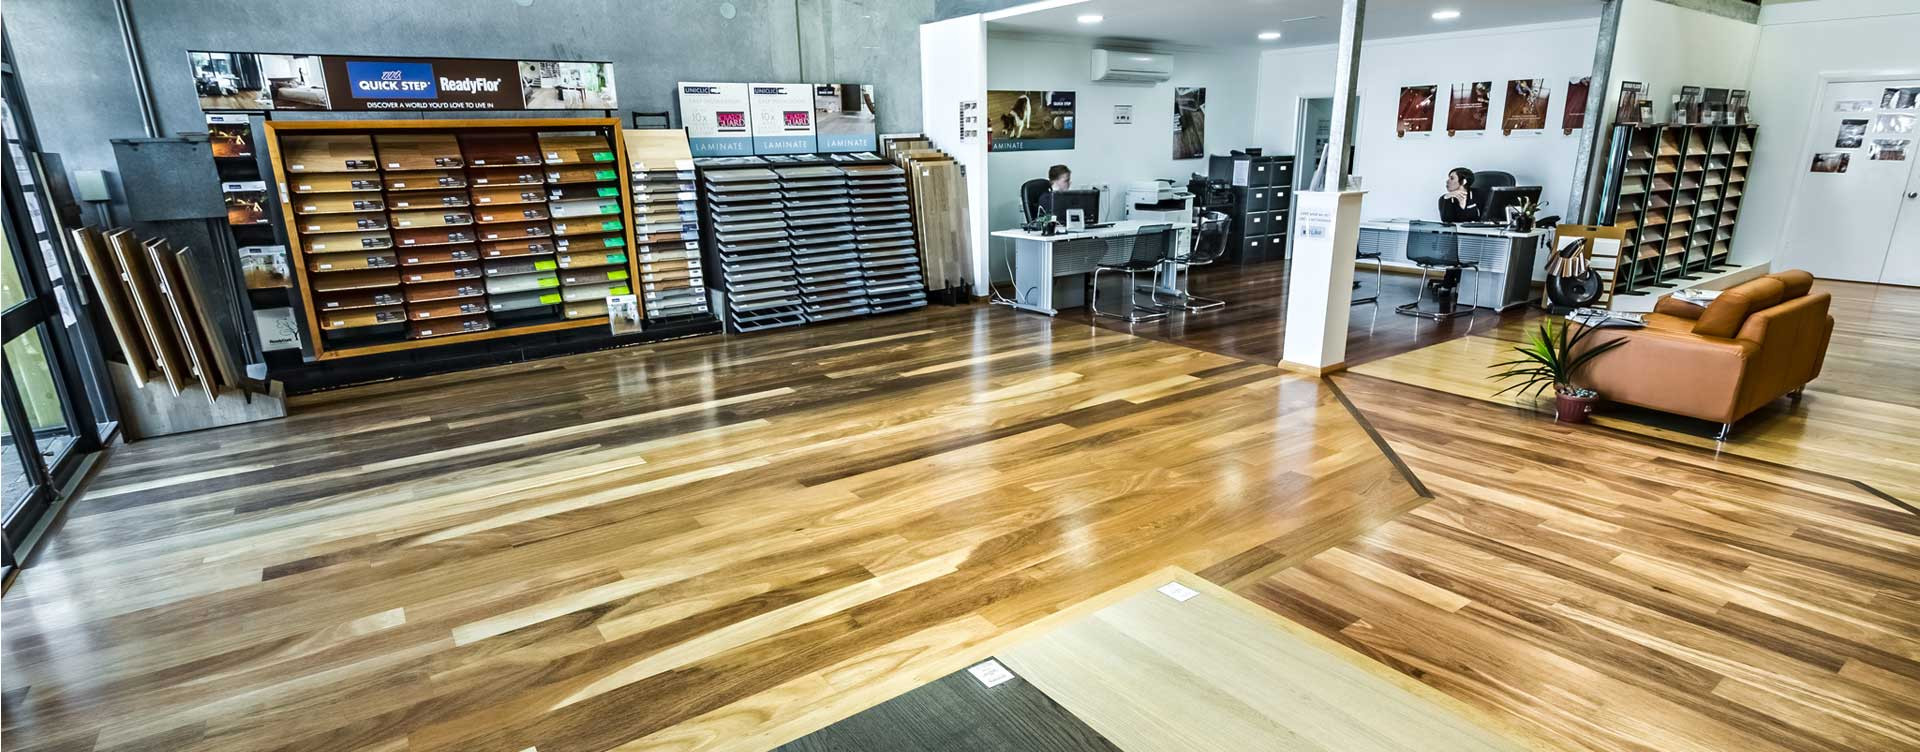 installing hardwood floors on concrete slab of timber flooring perth coastal flooring wa quality wooden intended for thats why they call us the home of fine wood floors